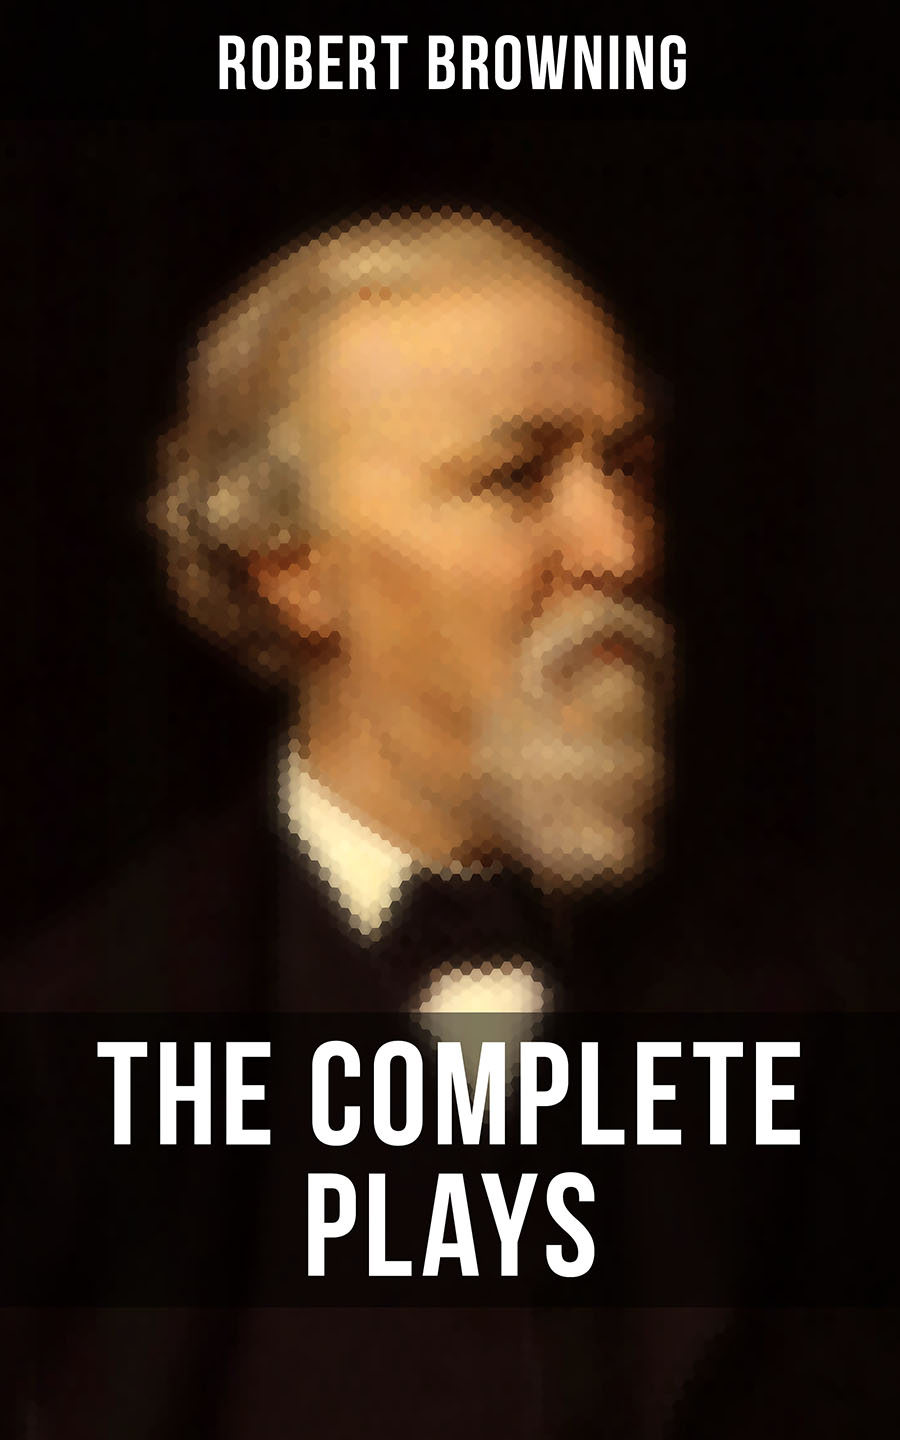 Robert Browning THE COMPLETE PLAYS OF ROBERT BROWNING цена и фото